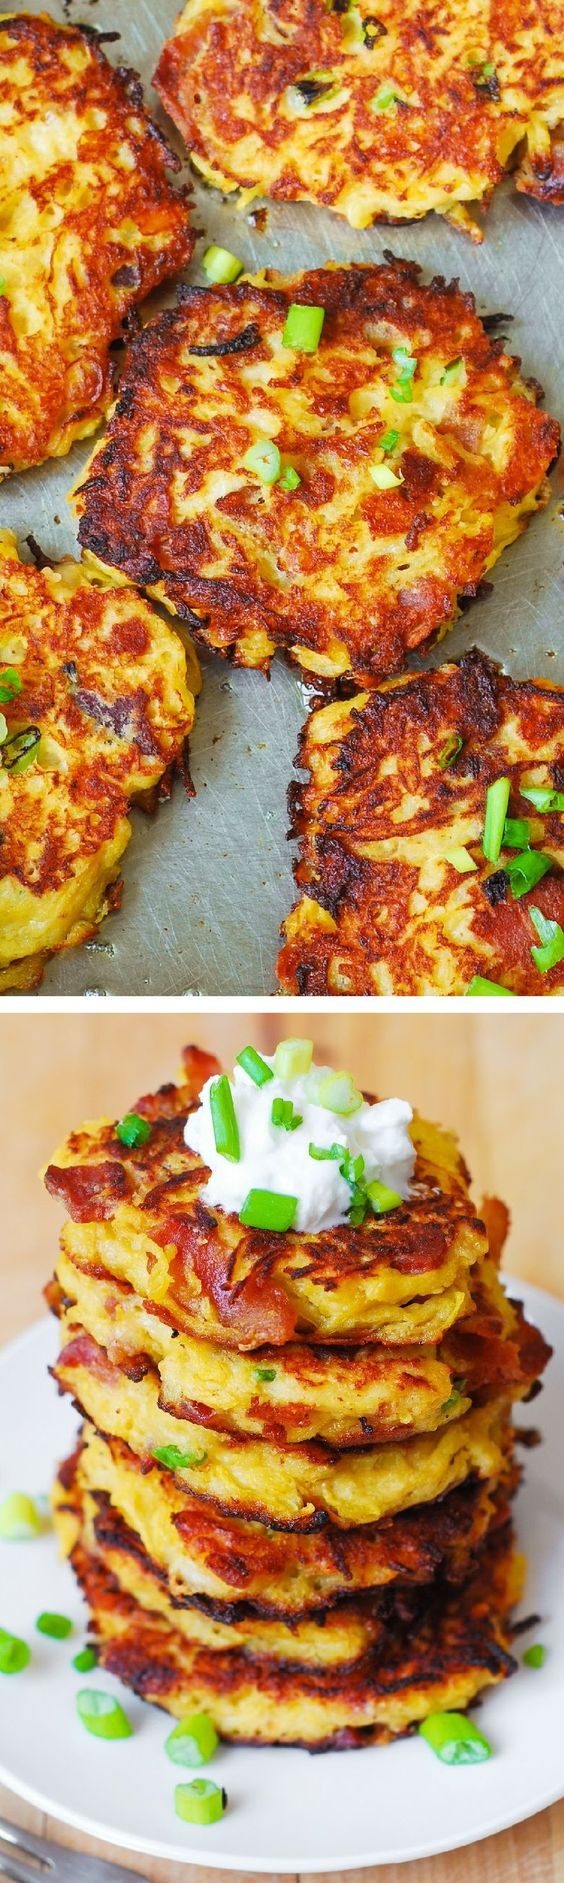 Bacon, Spaghetti Squash, and Parmesan Fritters. Serve with a dollop of Greek yogurt. #gluten_free #food #meal